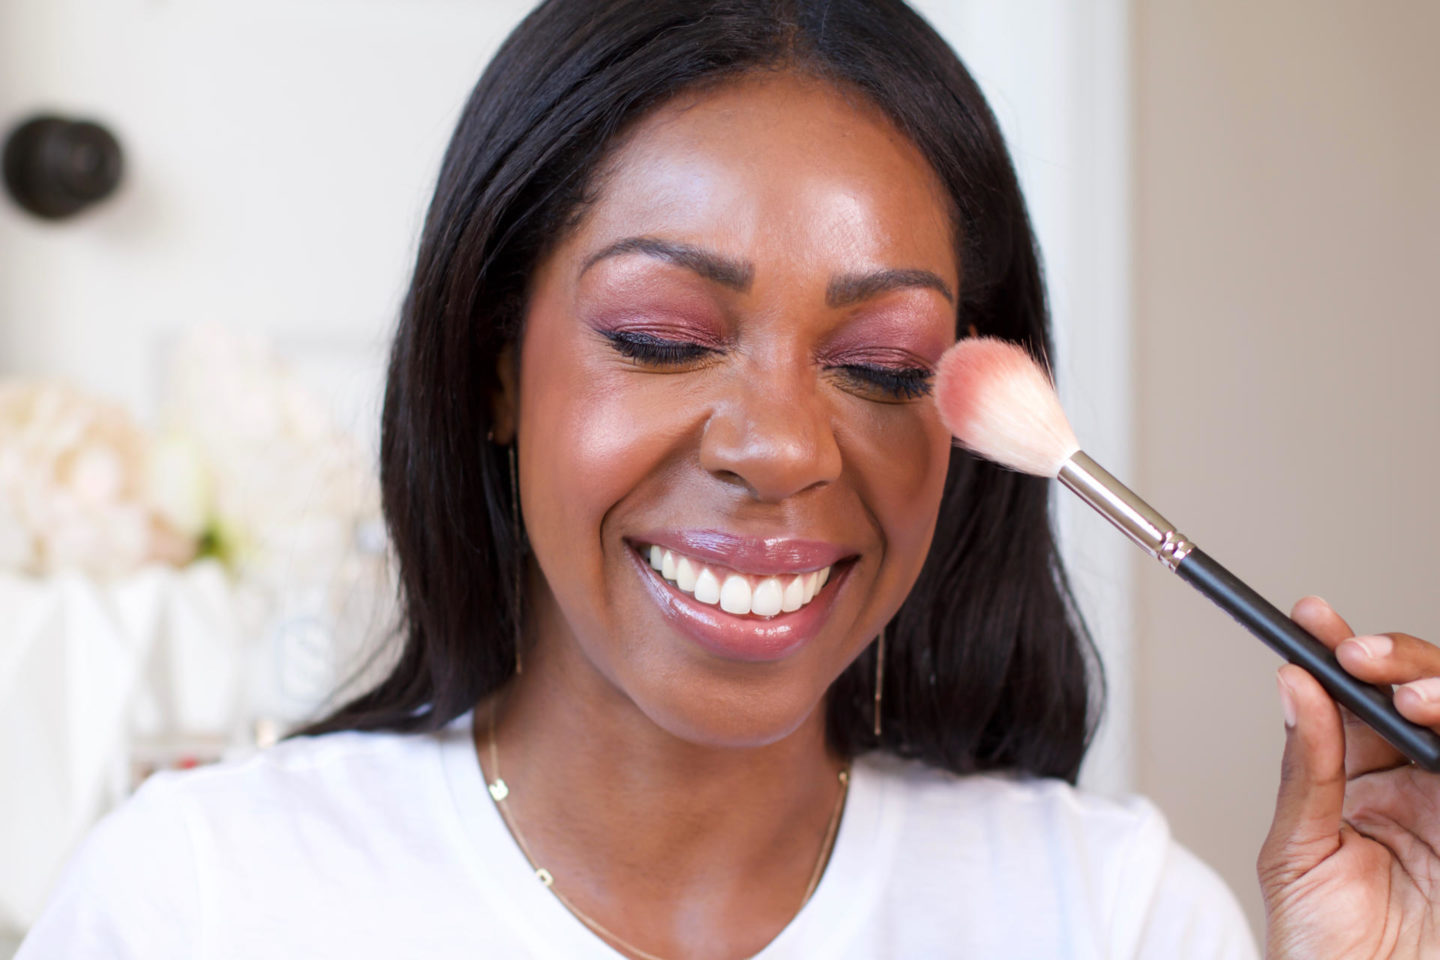 Dominique Baker applying Charlotte Tilbury Lovegasm palette with makeup brush